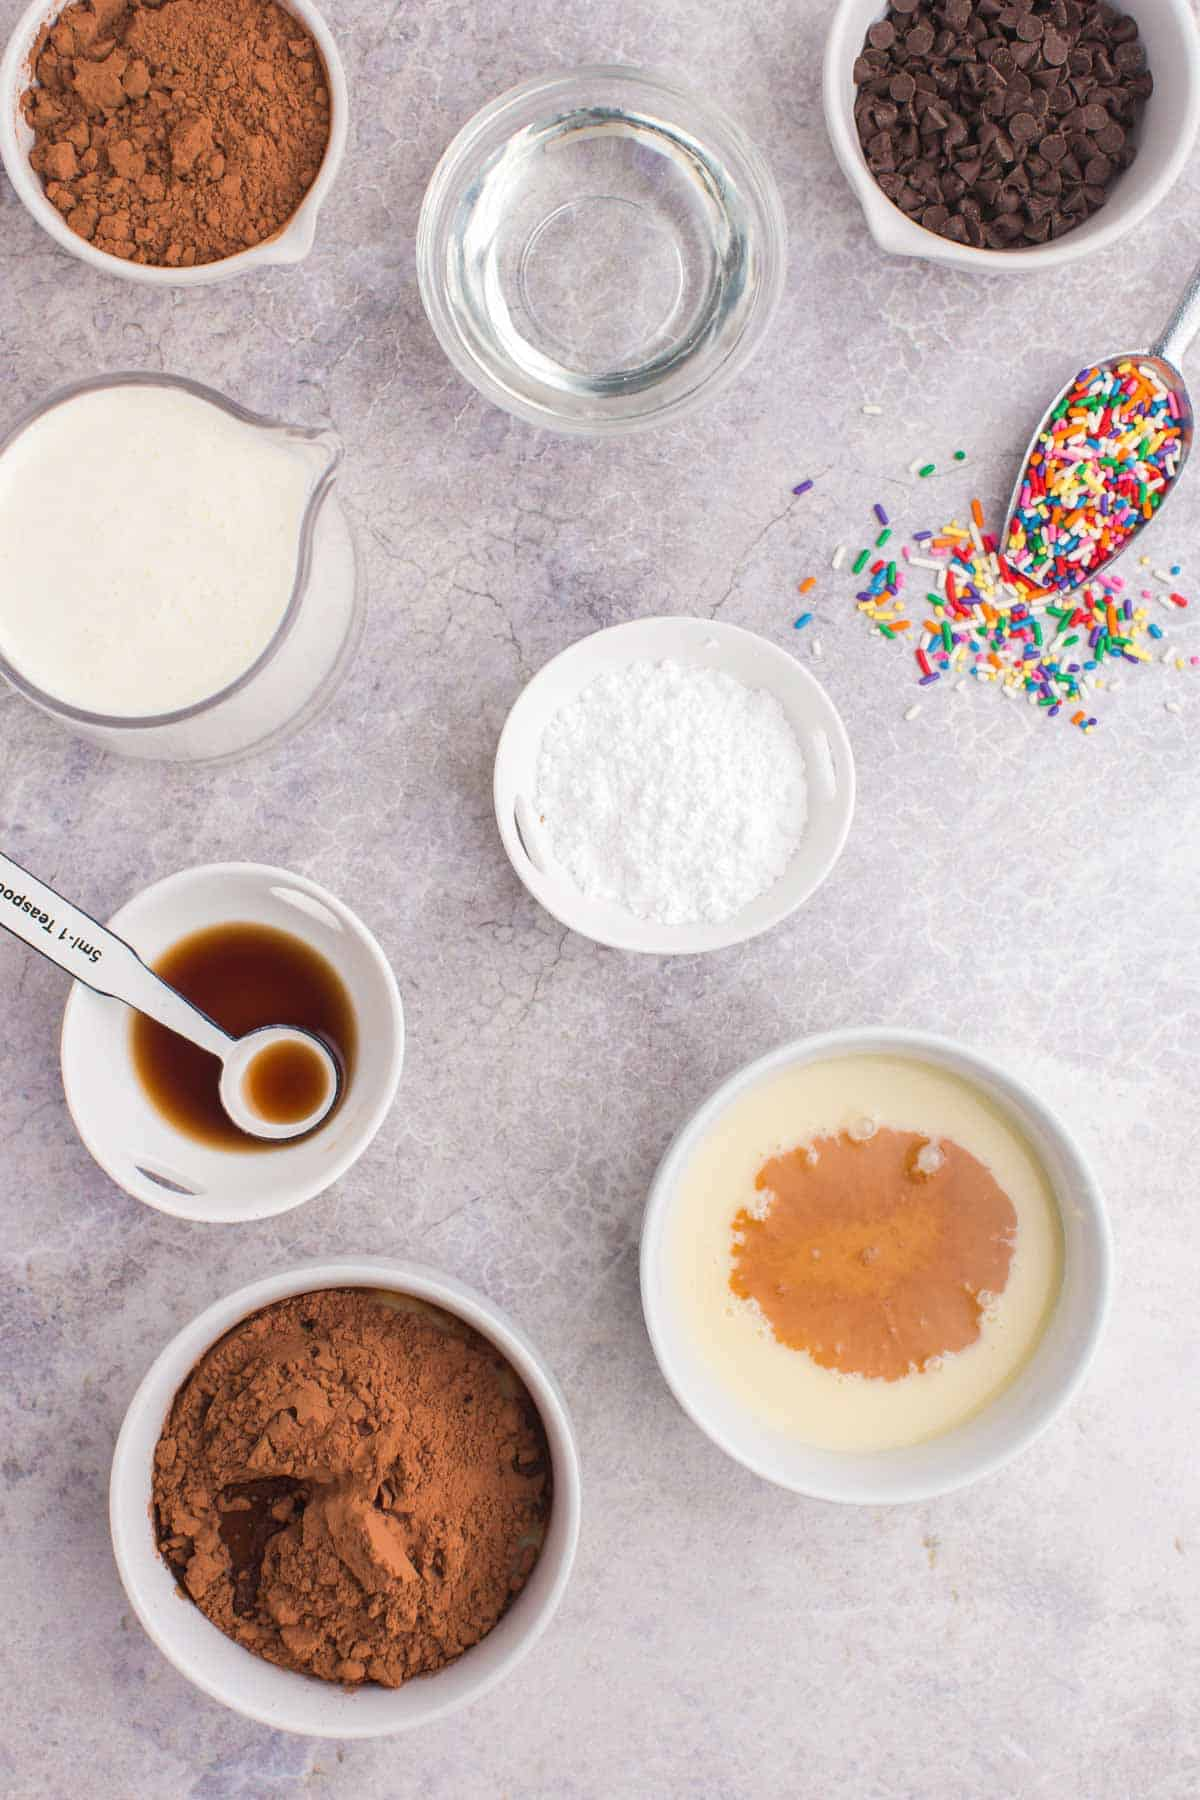 cocoa powder added to one bowl of sweetened condensed milk and vanilla extract added to another with all of the remaining ingredients still on the table